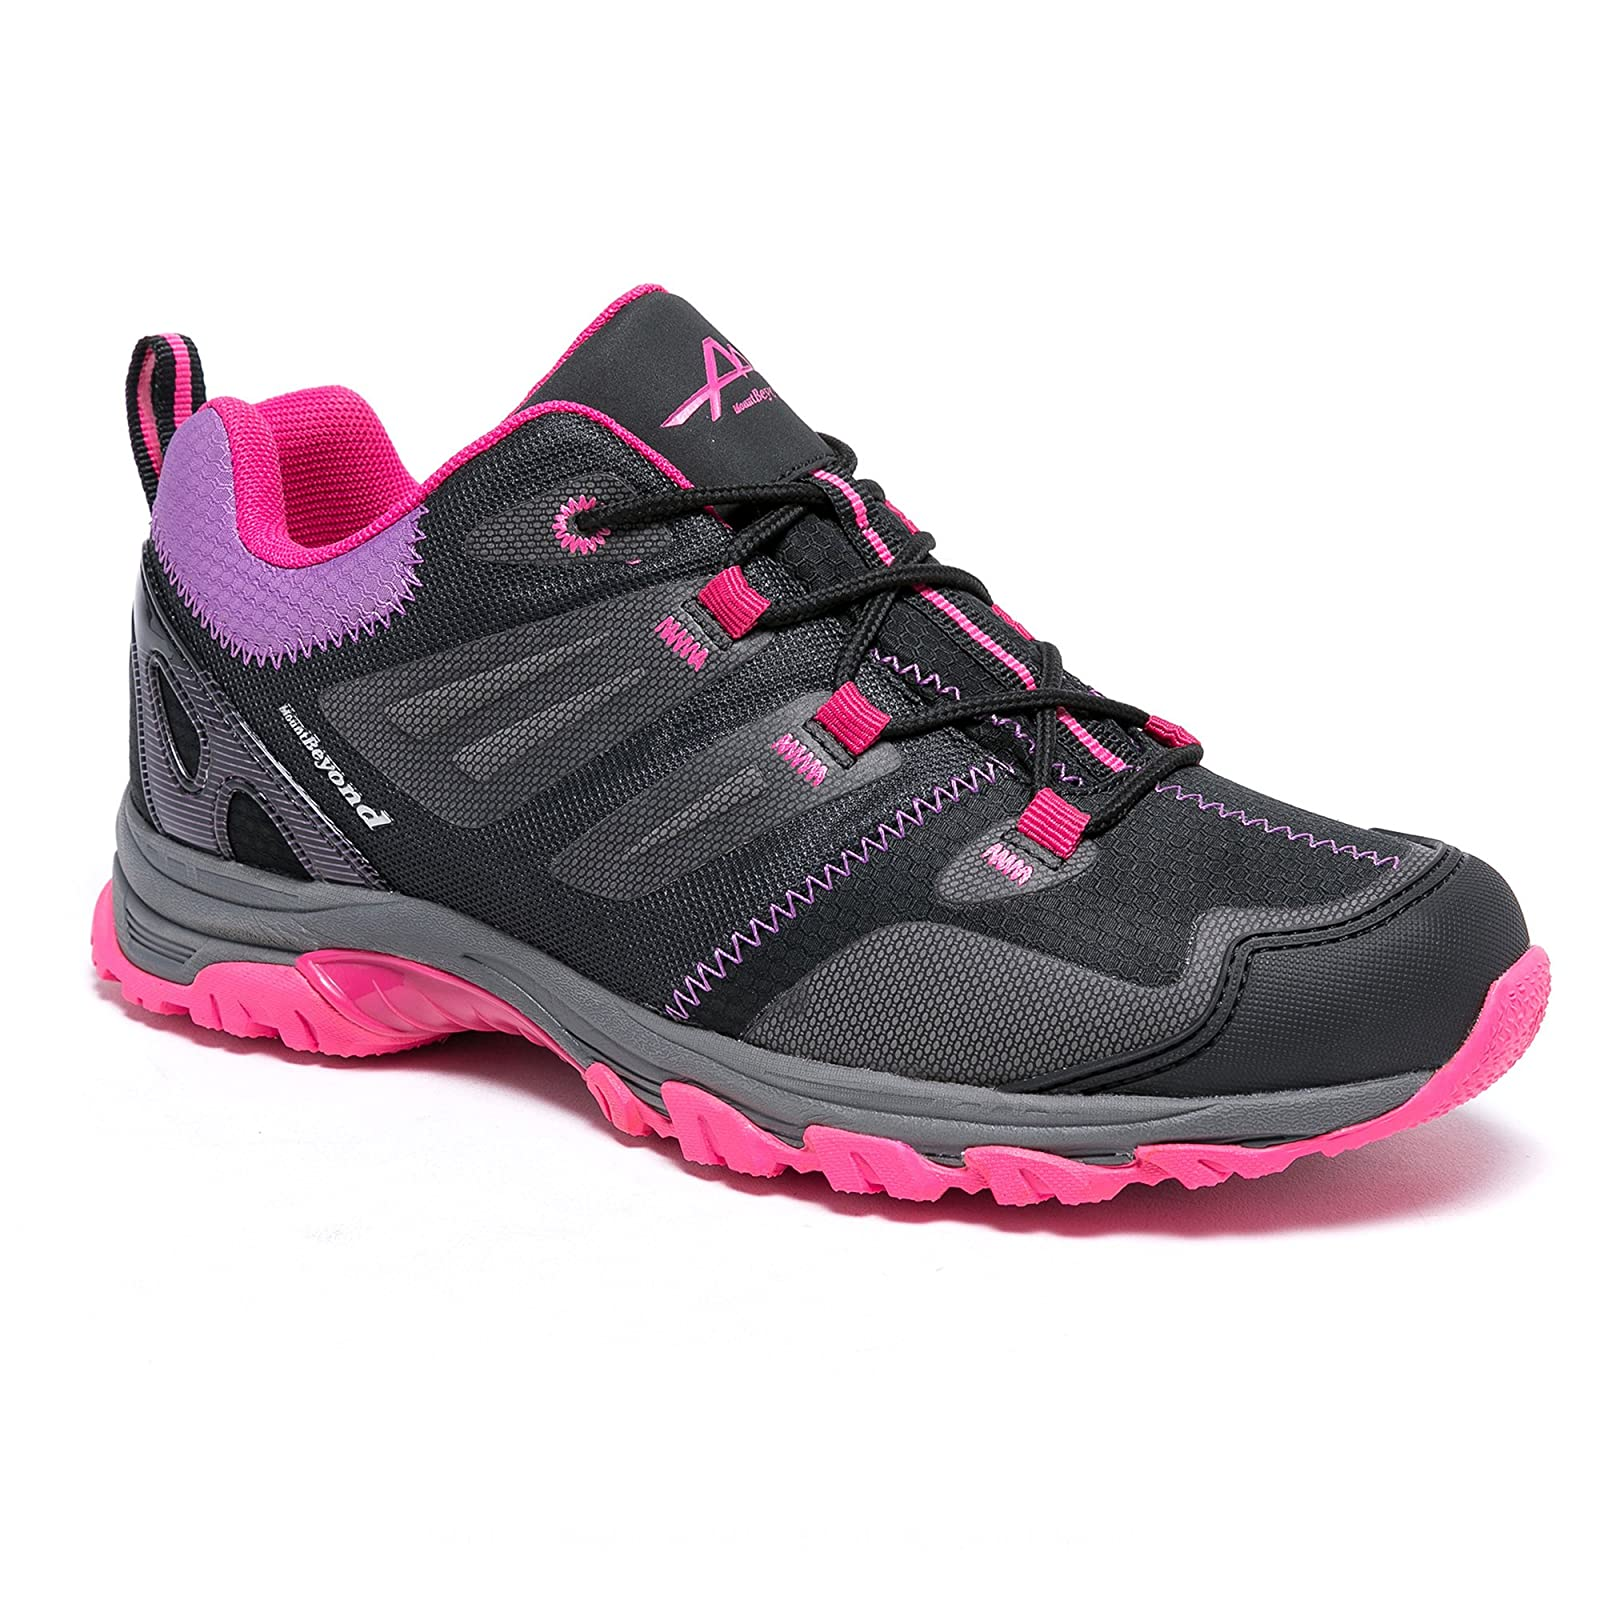 Mountbeyond Womens Waterproof Hiking Shoes Outdoor Breathable W001A - 5